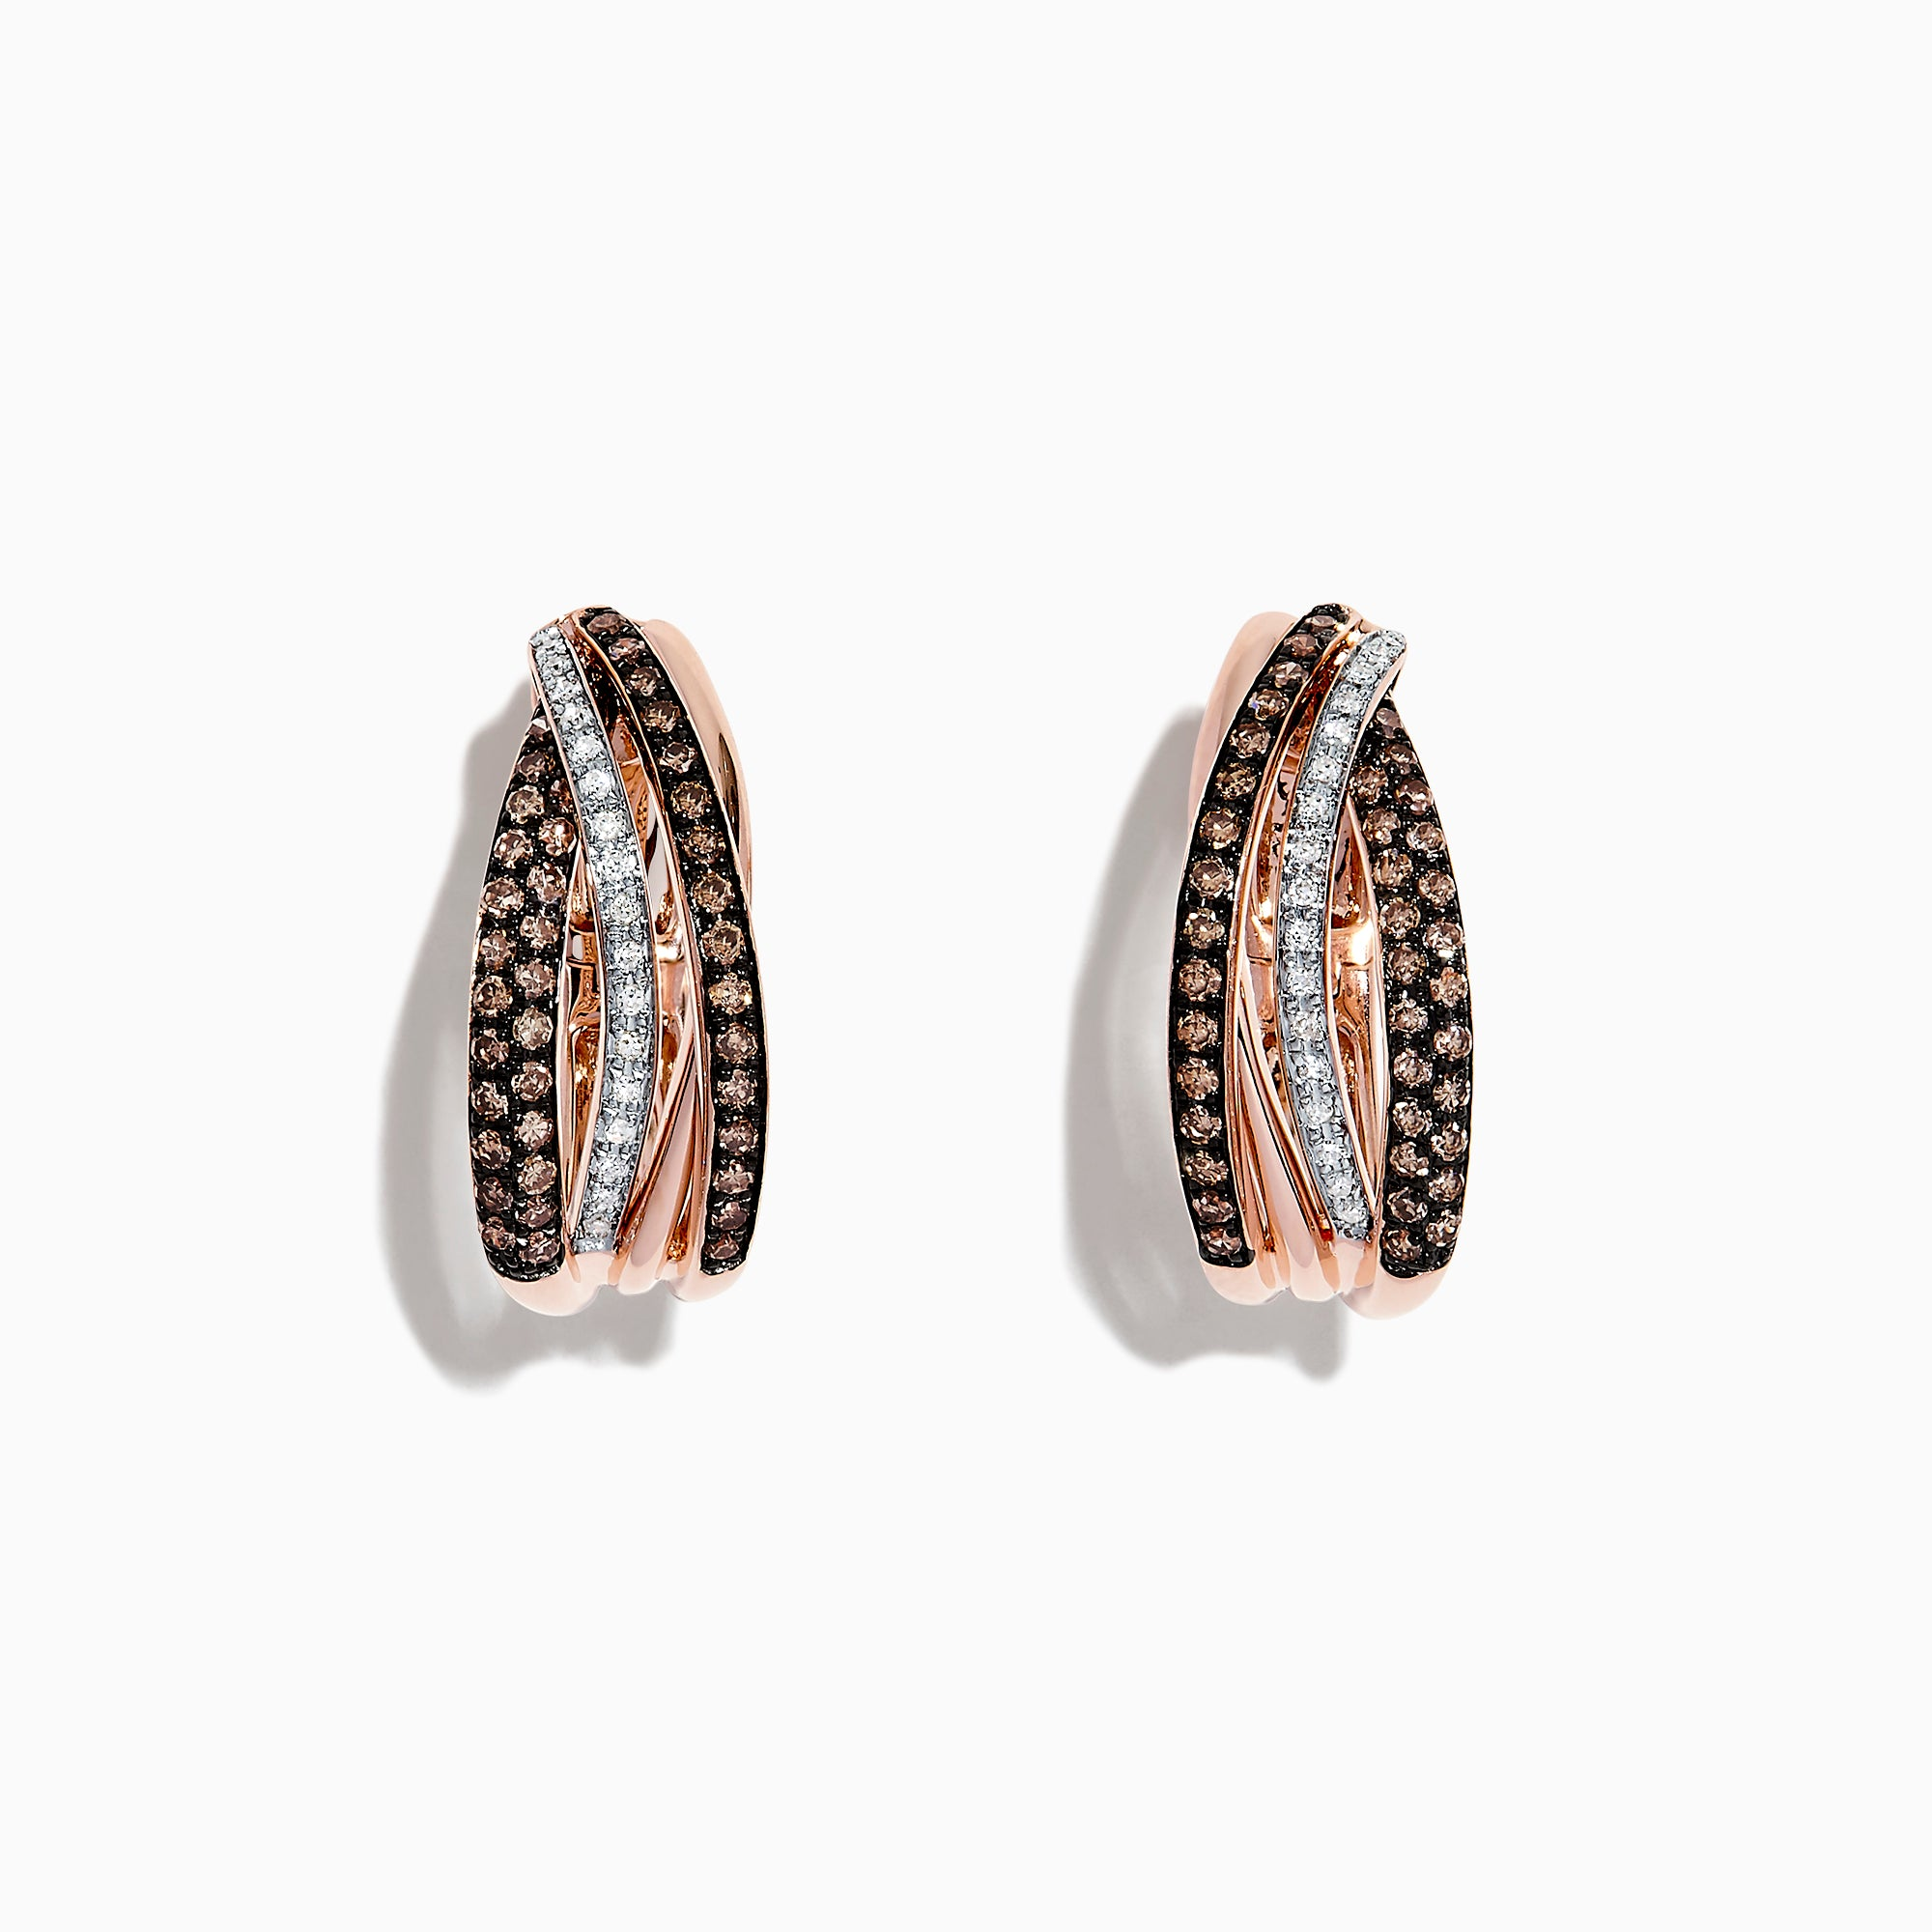 Effy 14K Rose Gold Espresso and White Diamond Mini Hoop Earrings, 0.71 TCW